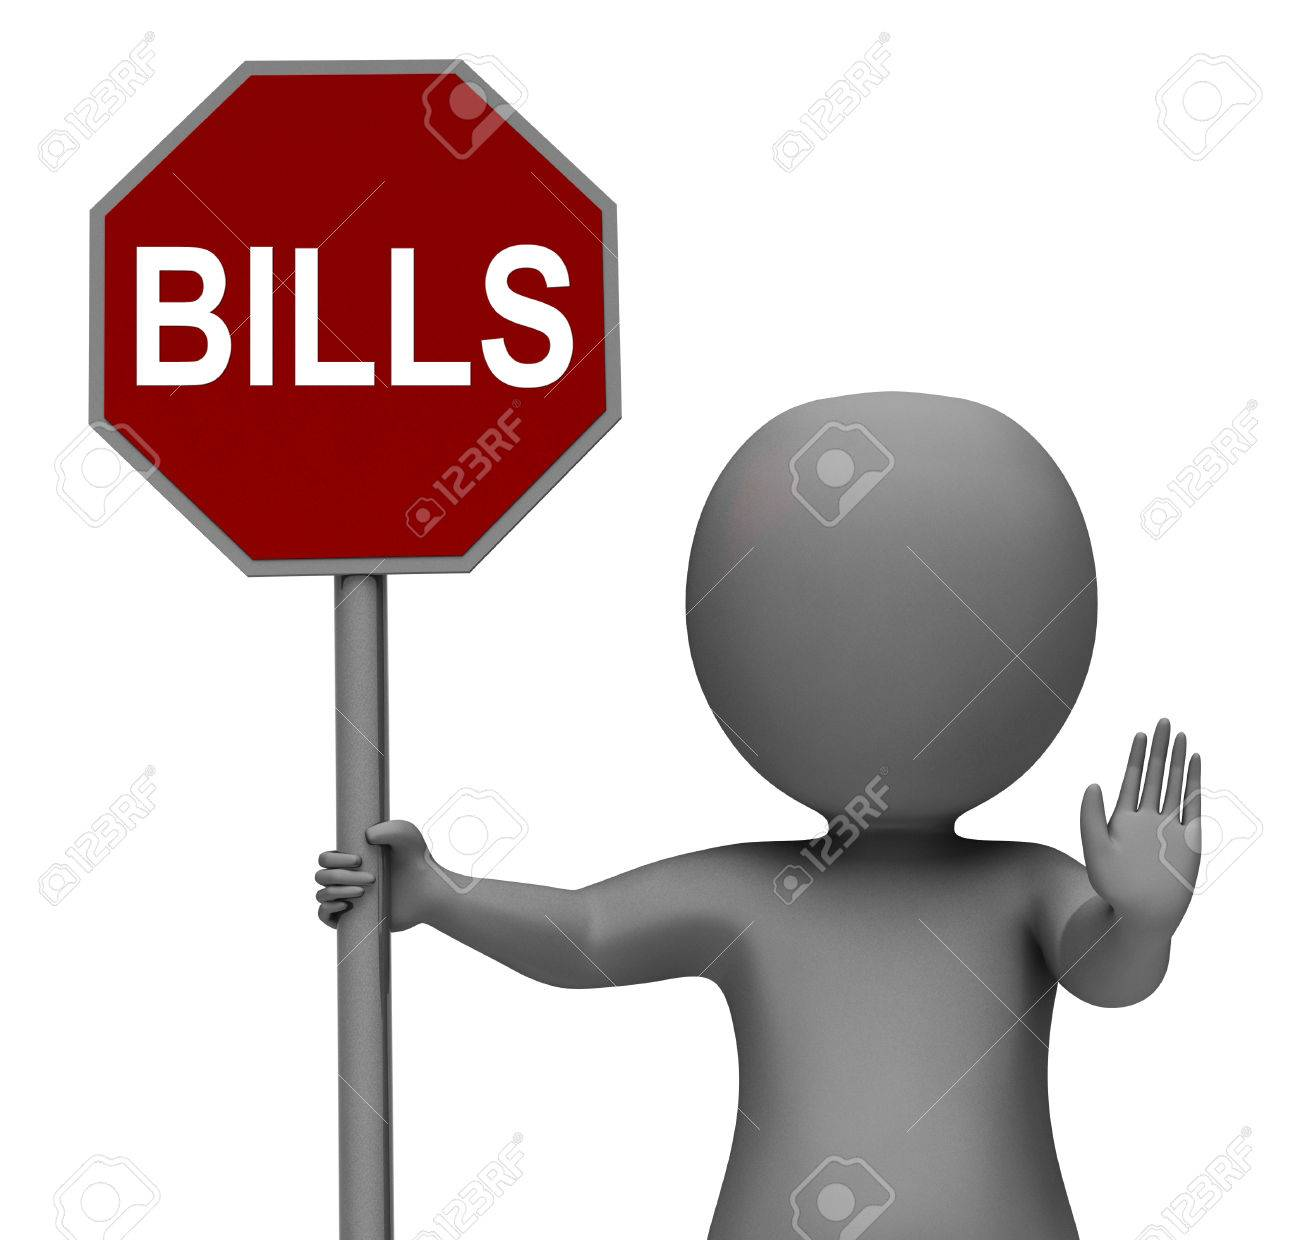 Bills Stop Sign Meaning Stopping Bill Payment Due Stock Photo - 26962962